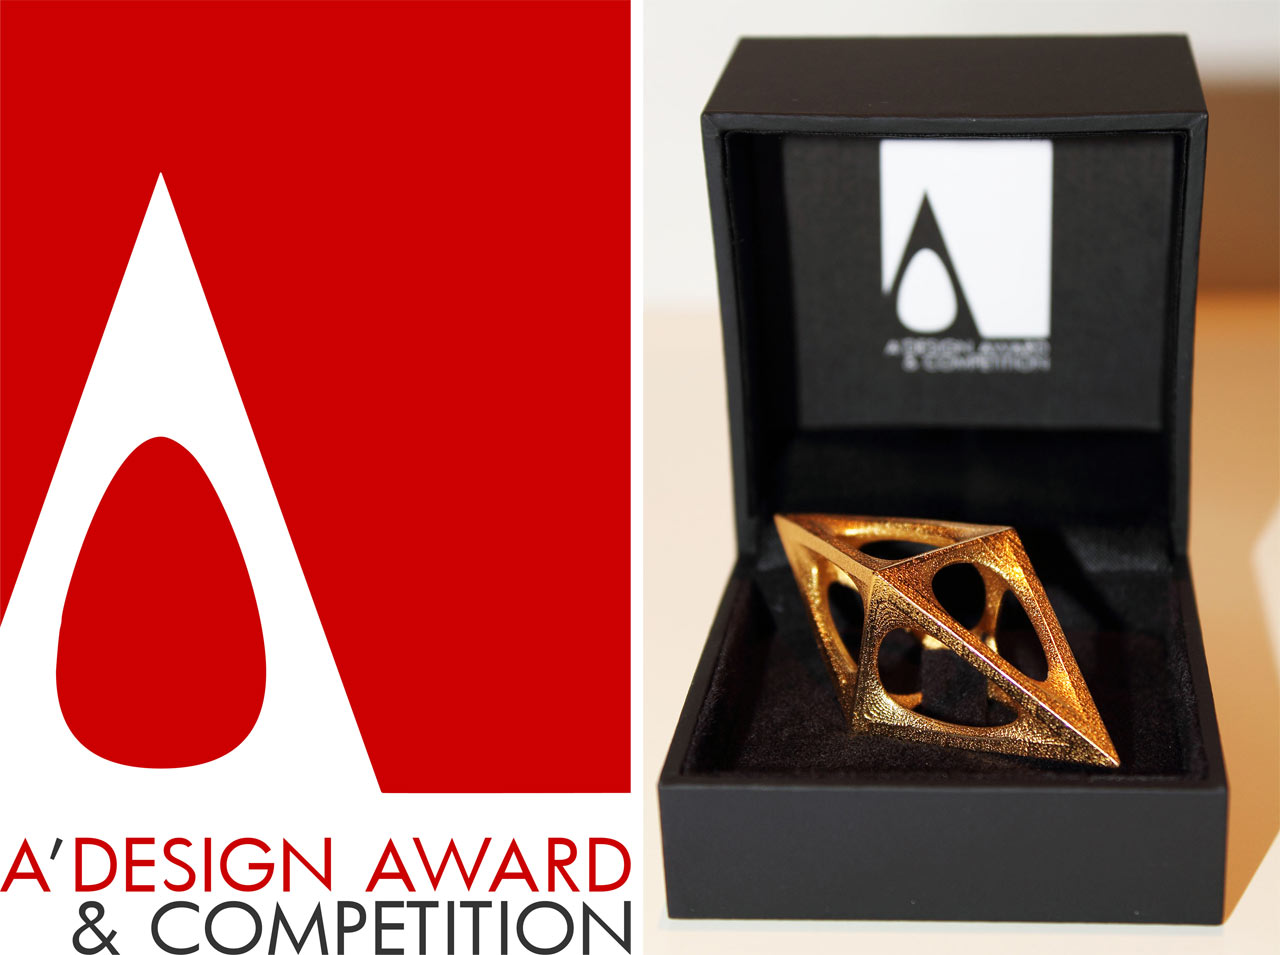 A' Design Award & Competition 2013: Call for Participants